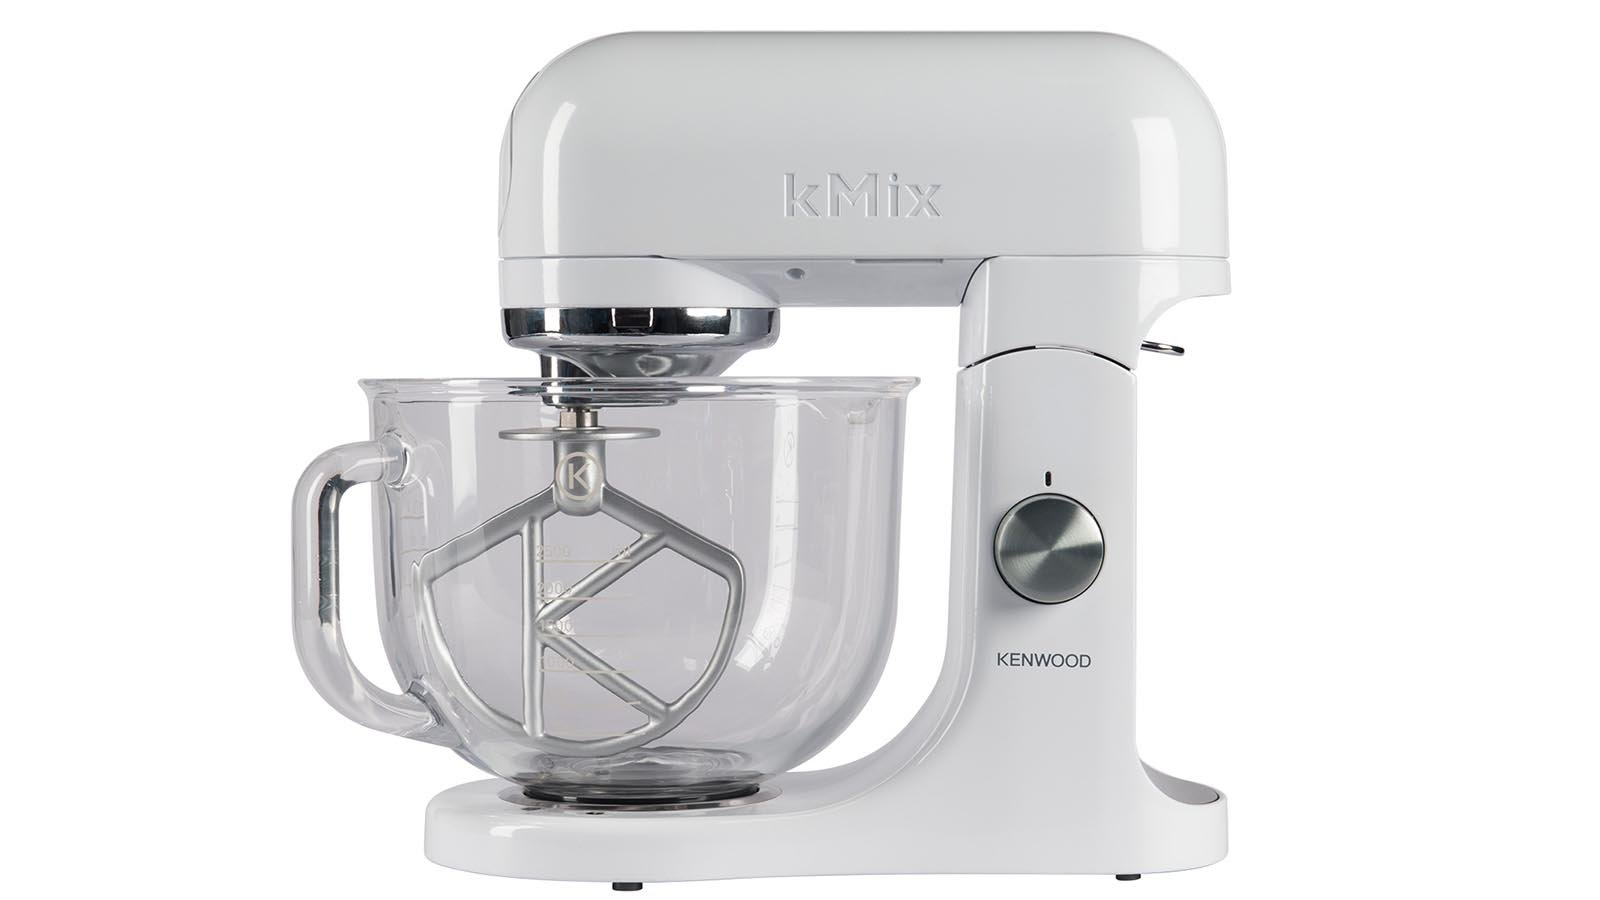 Best stand mixers: Superb mixers from KitchenAid, Sage, Kenwood and on fisher paykel kitchen appliances, fujitsu kitchen appliances, braun kitchen appliances, sears kitchen appliances, samsung kitchen appliances, rangemaster kitchen appliances, rac kitchen appliances, vintage kitchen appliances, aeg kitchen appliances, miele kitchen appliances, philco kitchen appliances, panasonic kitchen appliances, small kitchen appliances, daewoo kitchen appliances, apple kitchen appliances, european kitchen appliances, cda kitchen appliances, dual kitchen appliances, discount kitchen appliances, mitsubishi kitchen appliances,